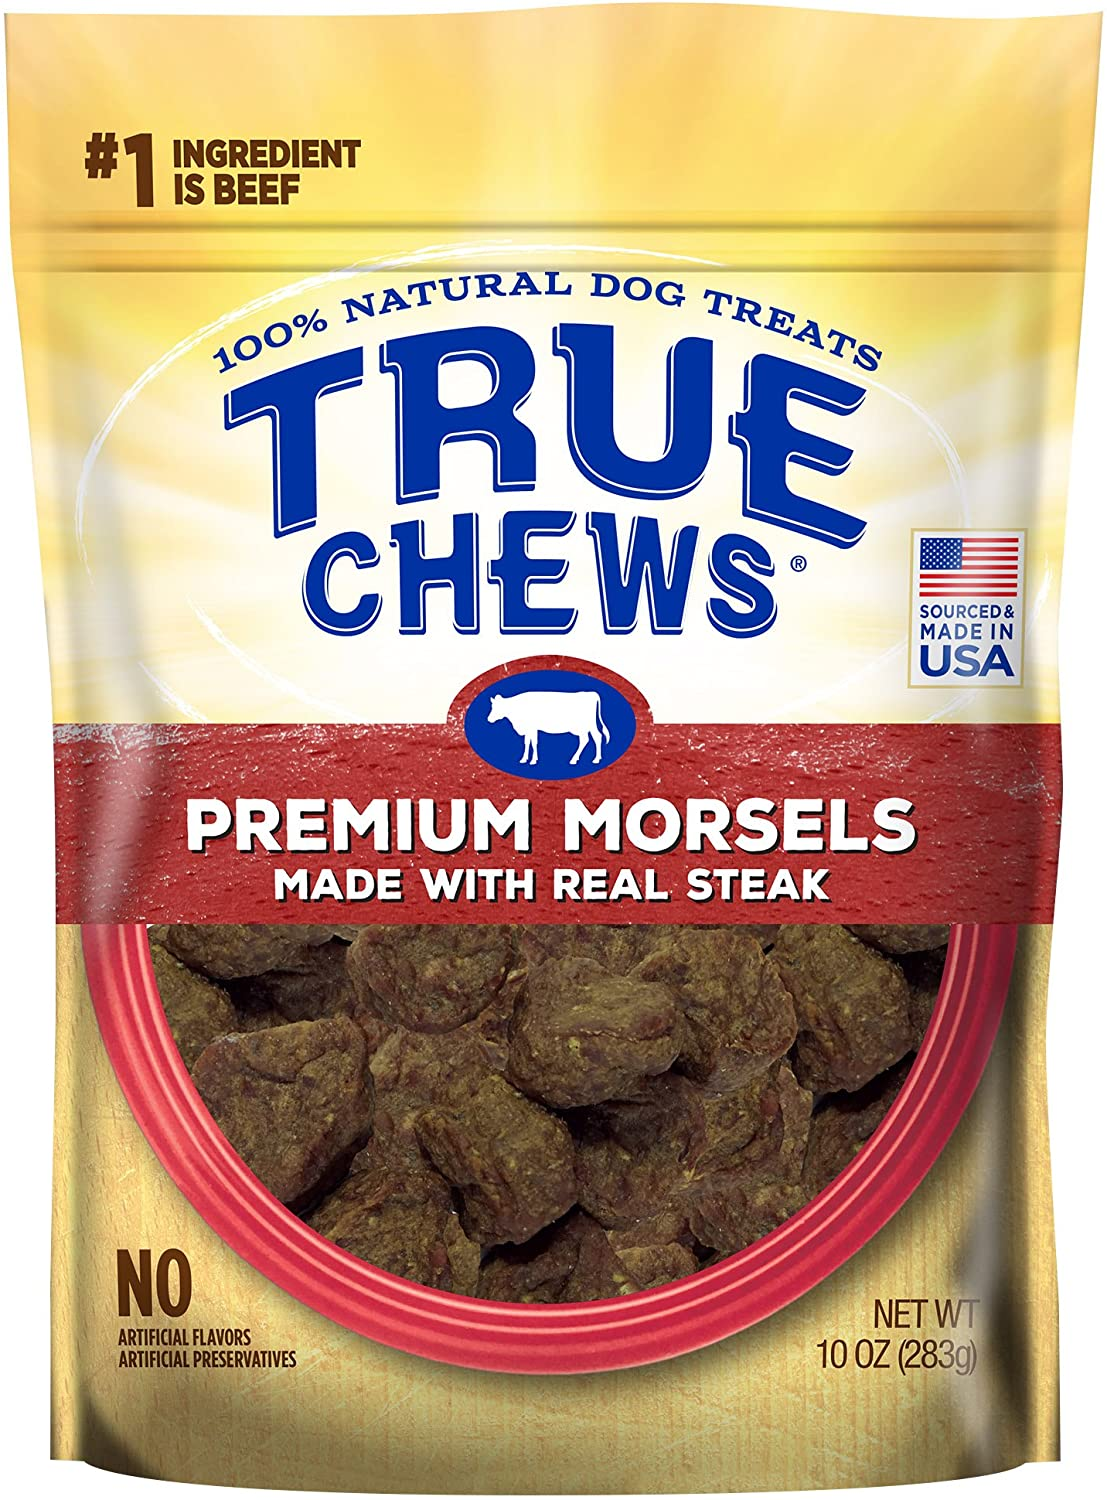 True Chews Premium Morsels Made with Real Steak Dog Treats